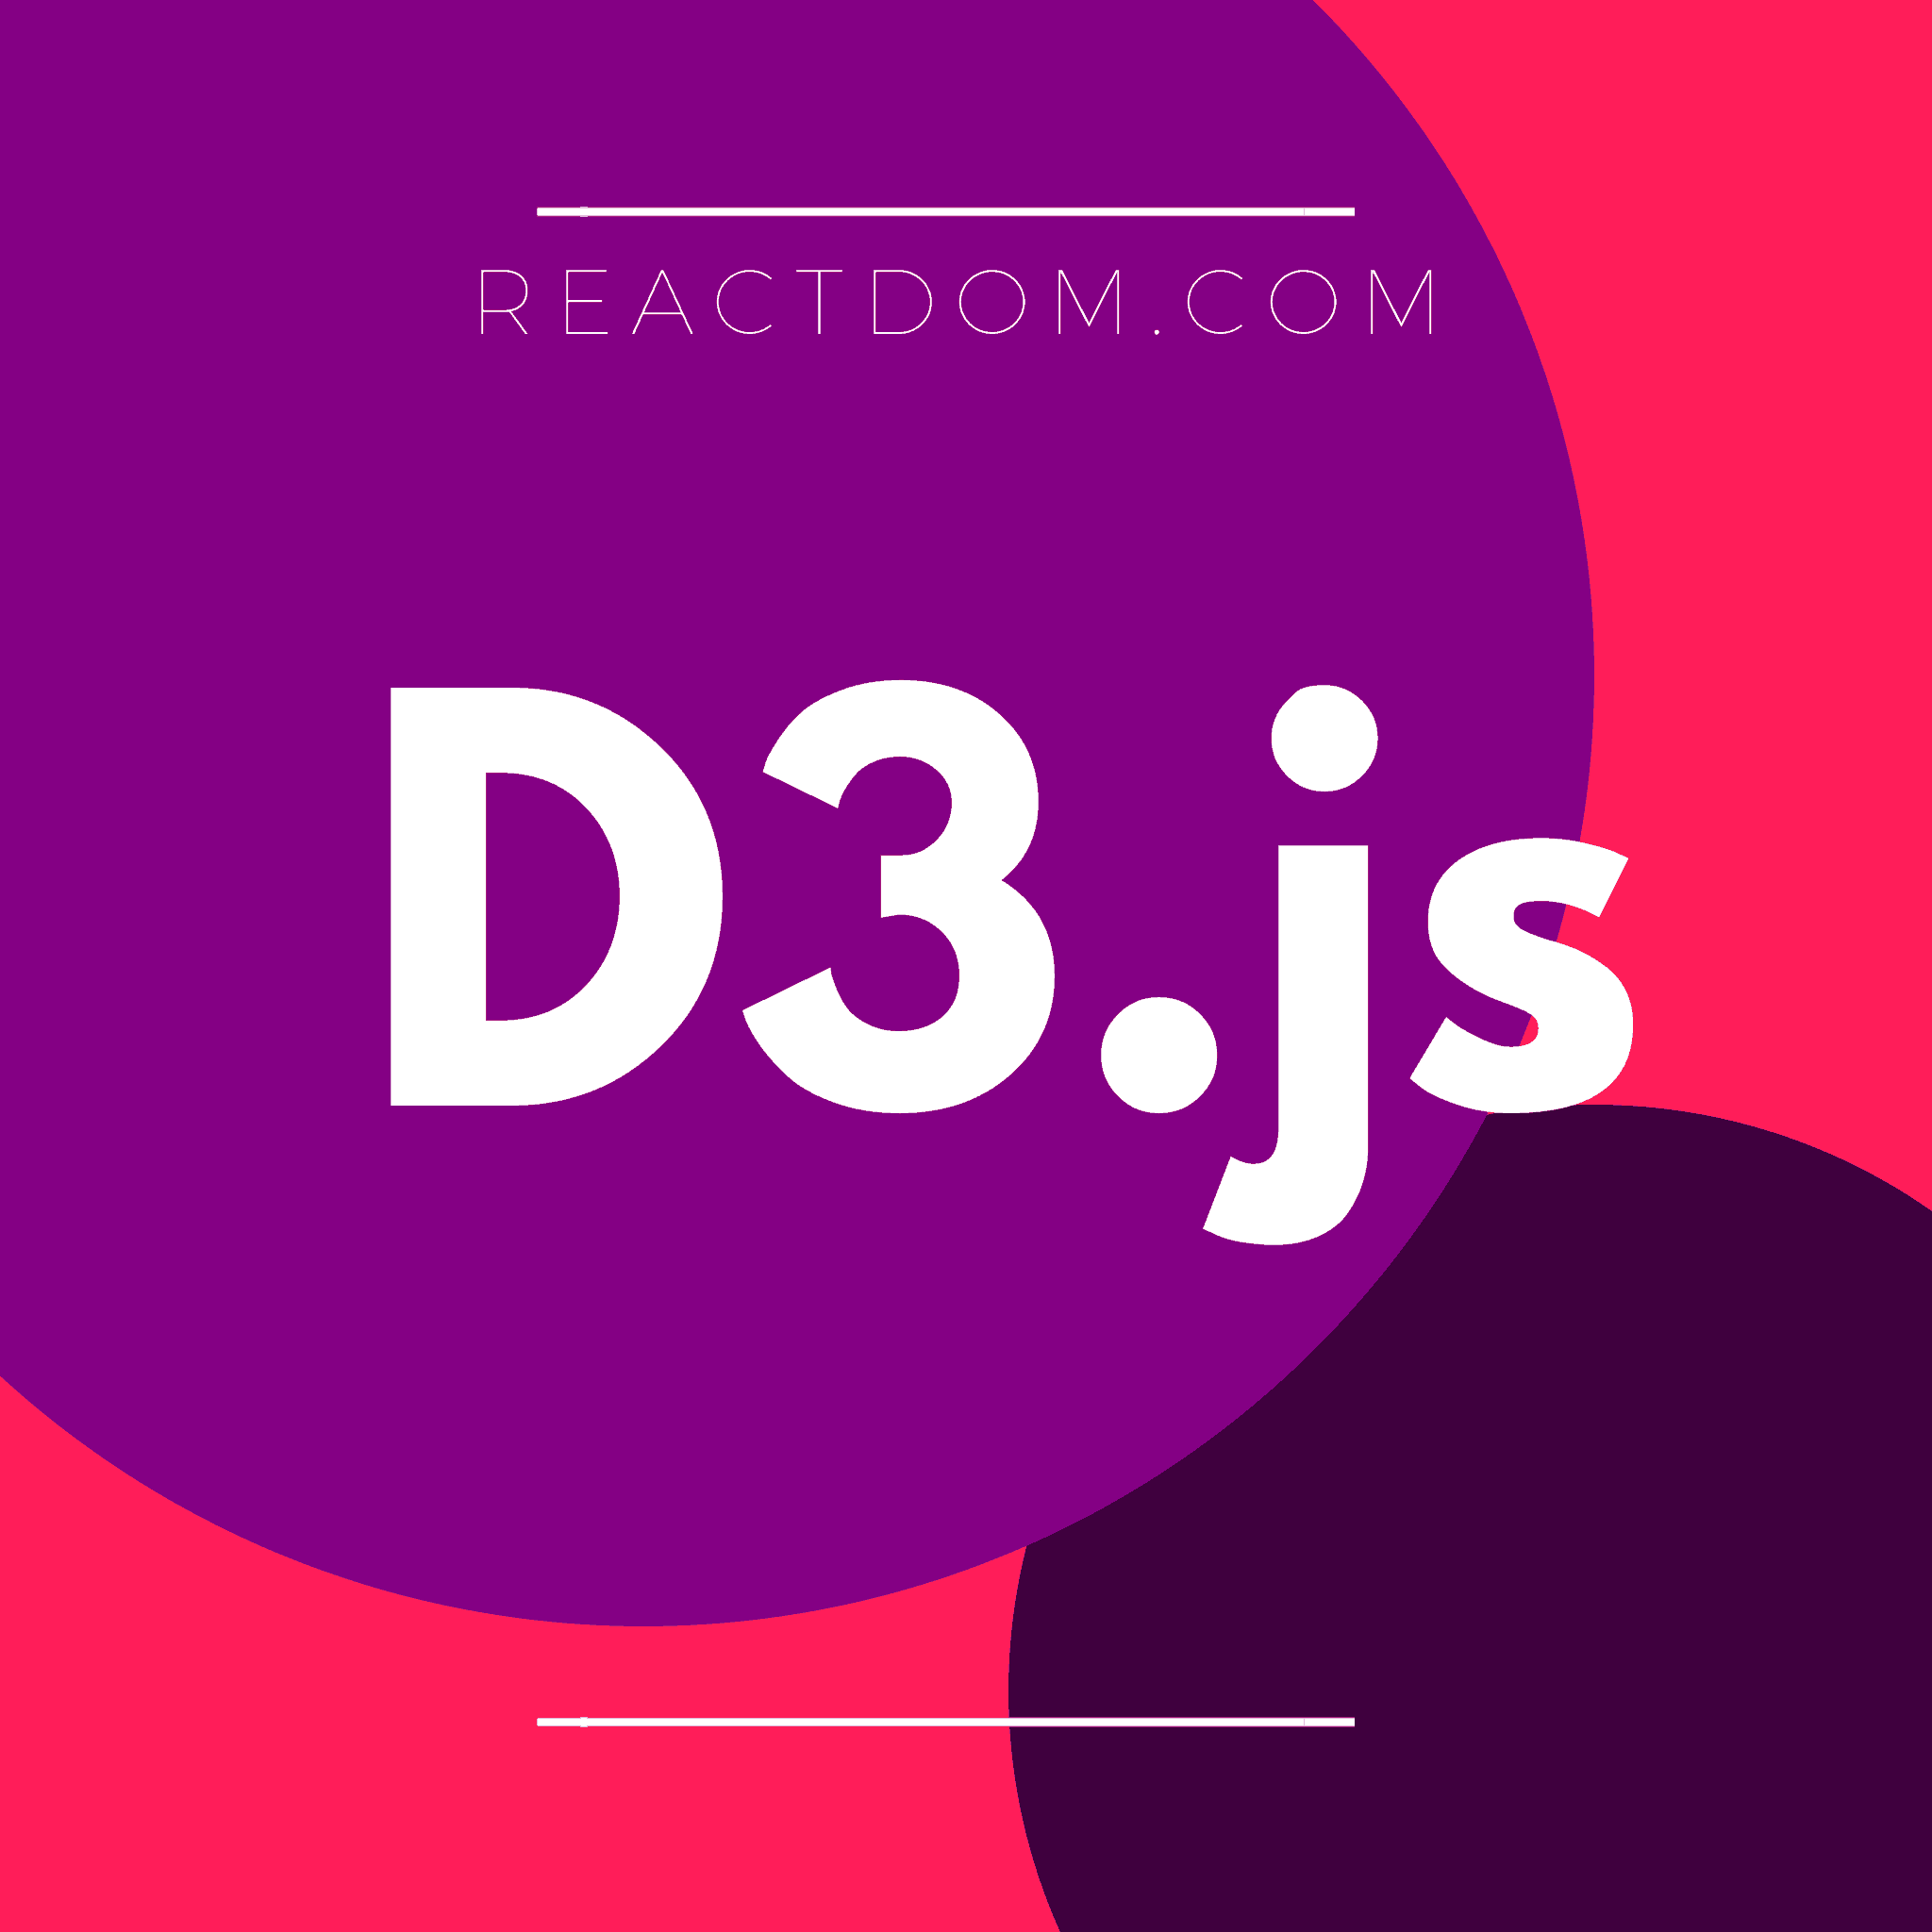 Learn D3 js: Best D3 js courses, tutorials & books 2019 – ReactDOM